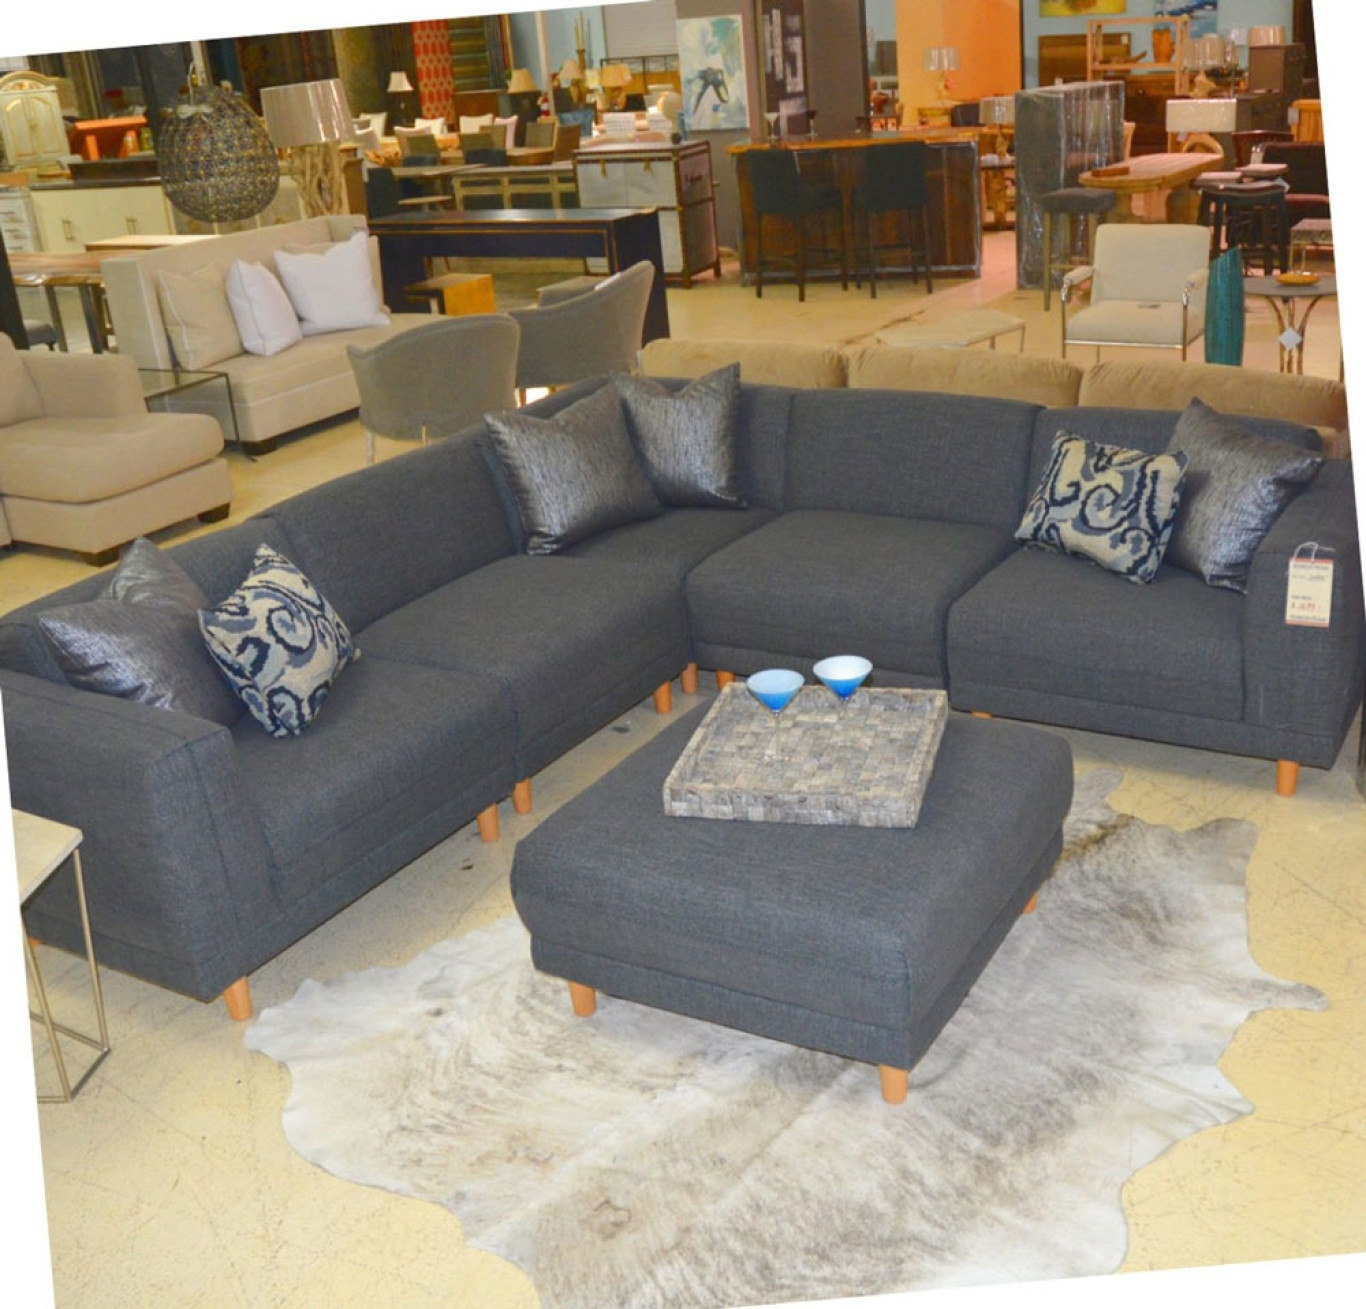 Ordinaire Homemakers Furniture Des Moines Iowa Regarding Homemakers Sectional Sofas  (Photo 1 Of 10)